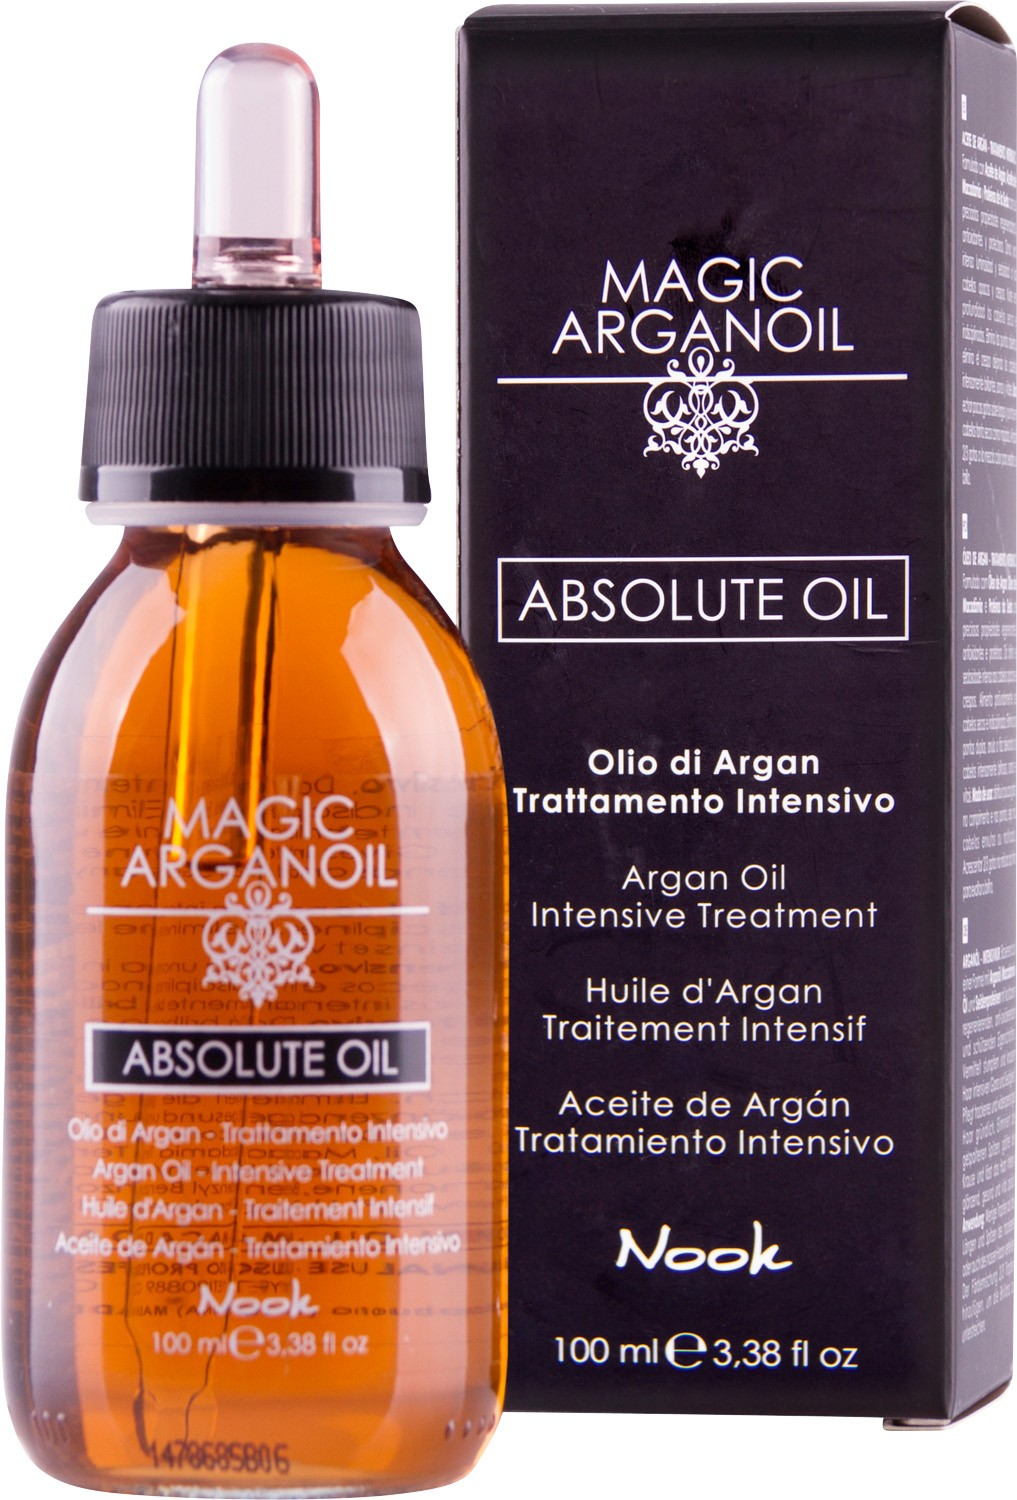 "Nook Magic Arganoil Absolute Oil Эликсир для волос ""Магия Арганы абсолют"" (100 ml) 524-1"